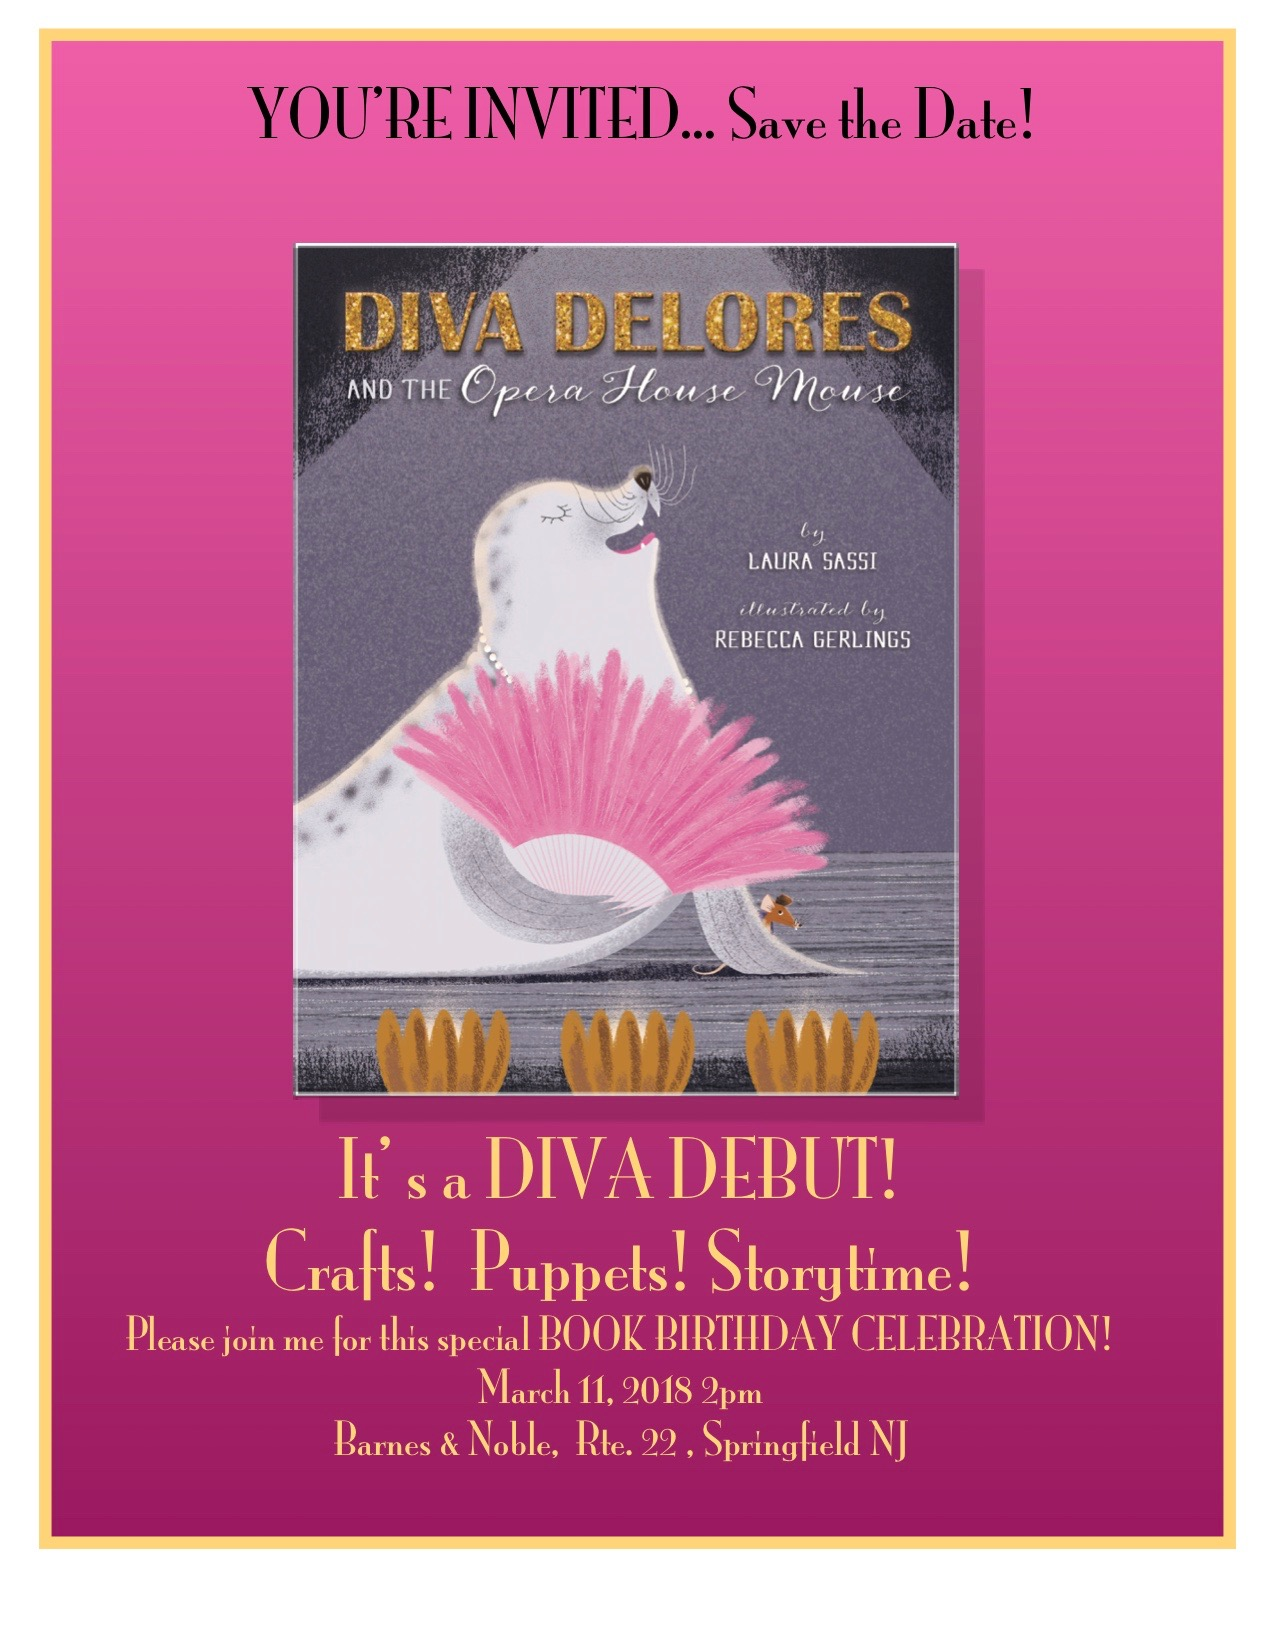 SAVE THE DATE:  It's a DIVA PARTY!